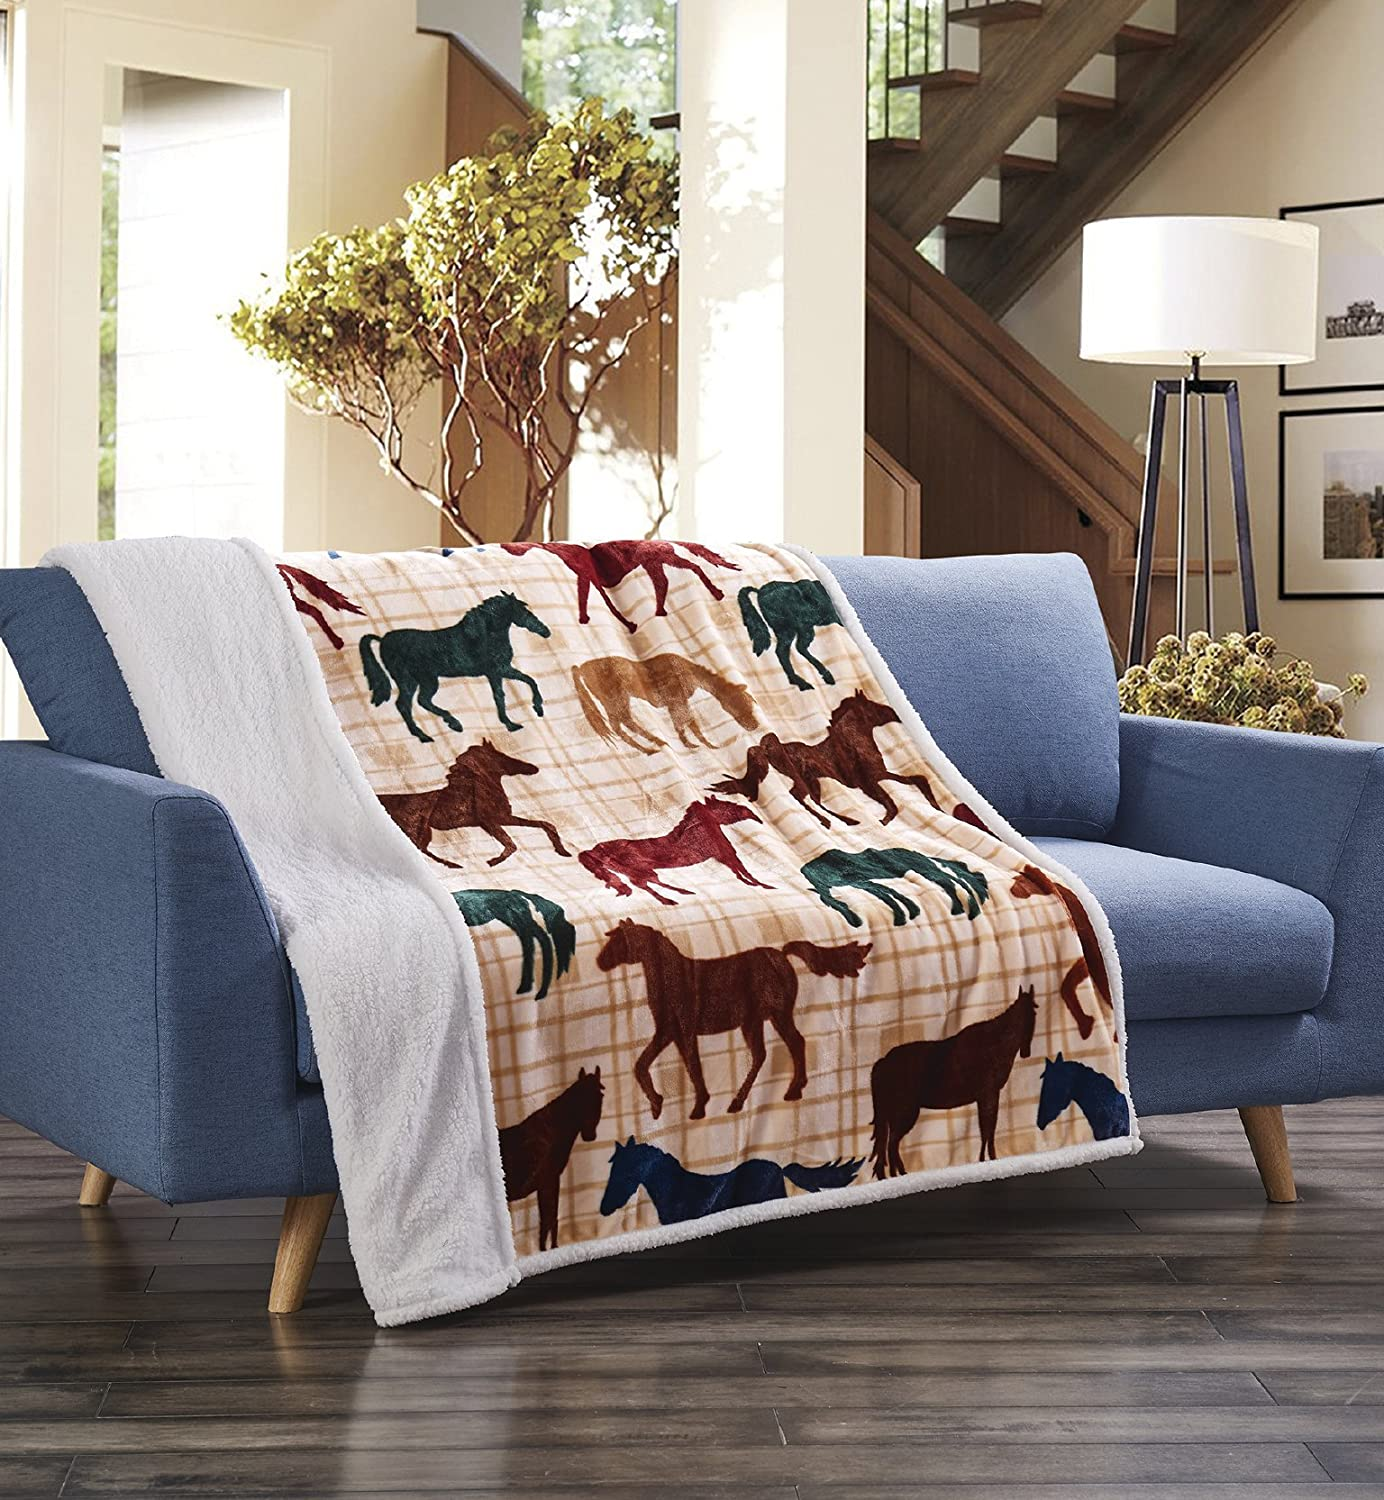 "Virah Bella Colorful Horses Beige Plaid Flannel Throw Blanket with Sherpa Backing 50"" x 60"""